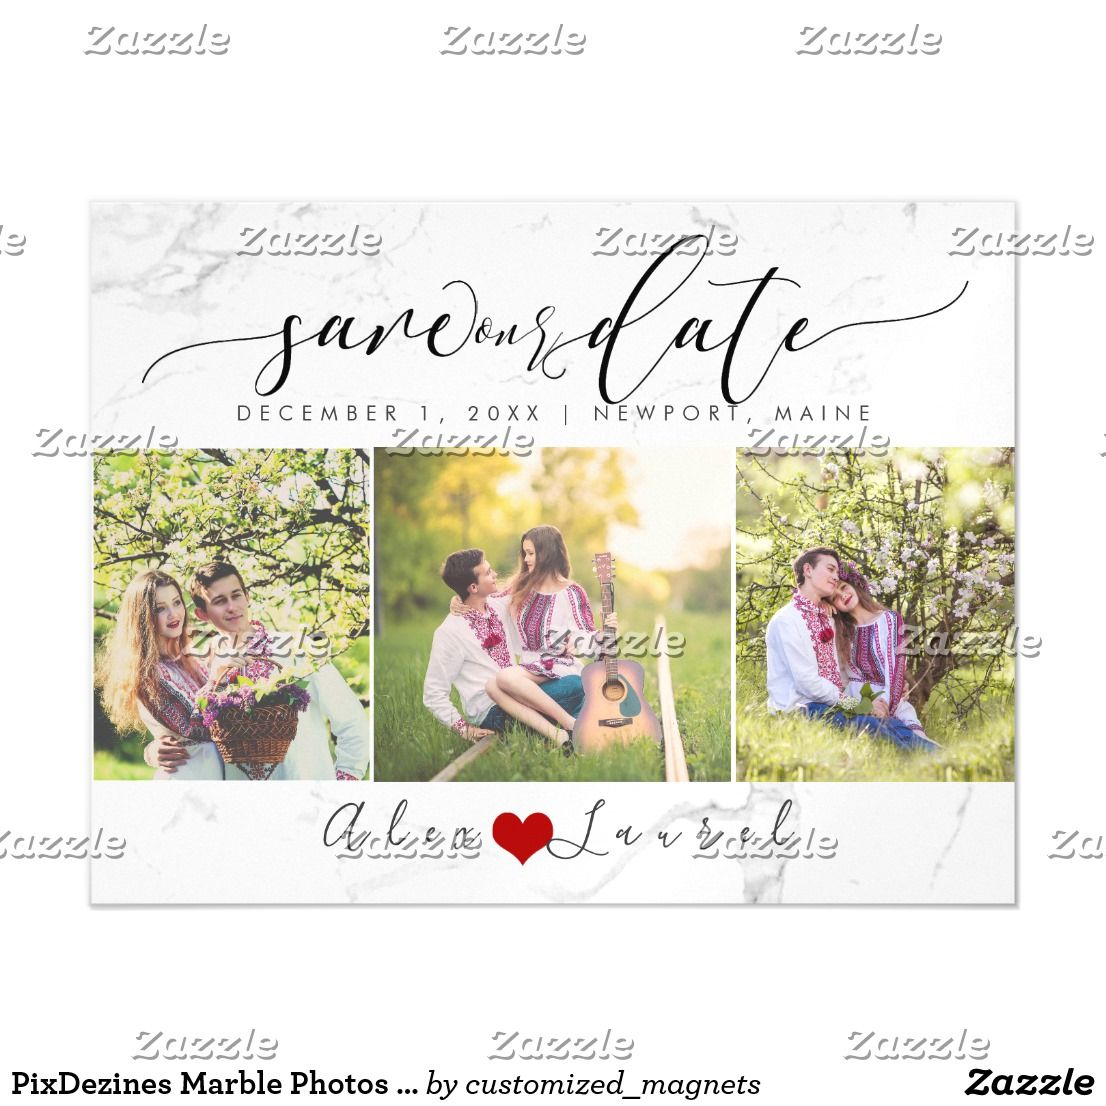 pixdezines marble photos save our date magnetic invitation in 2018